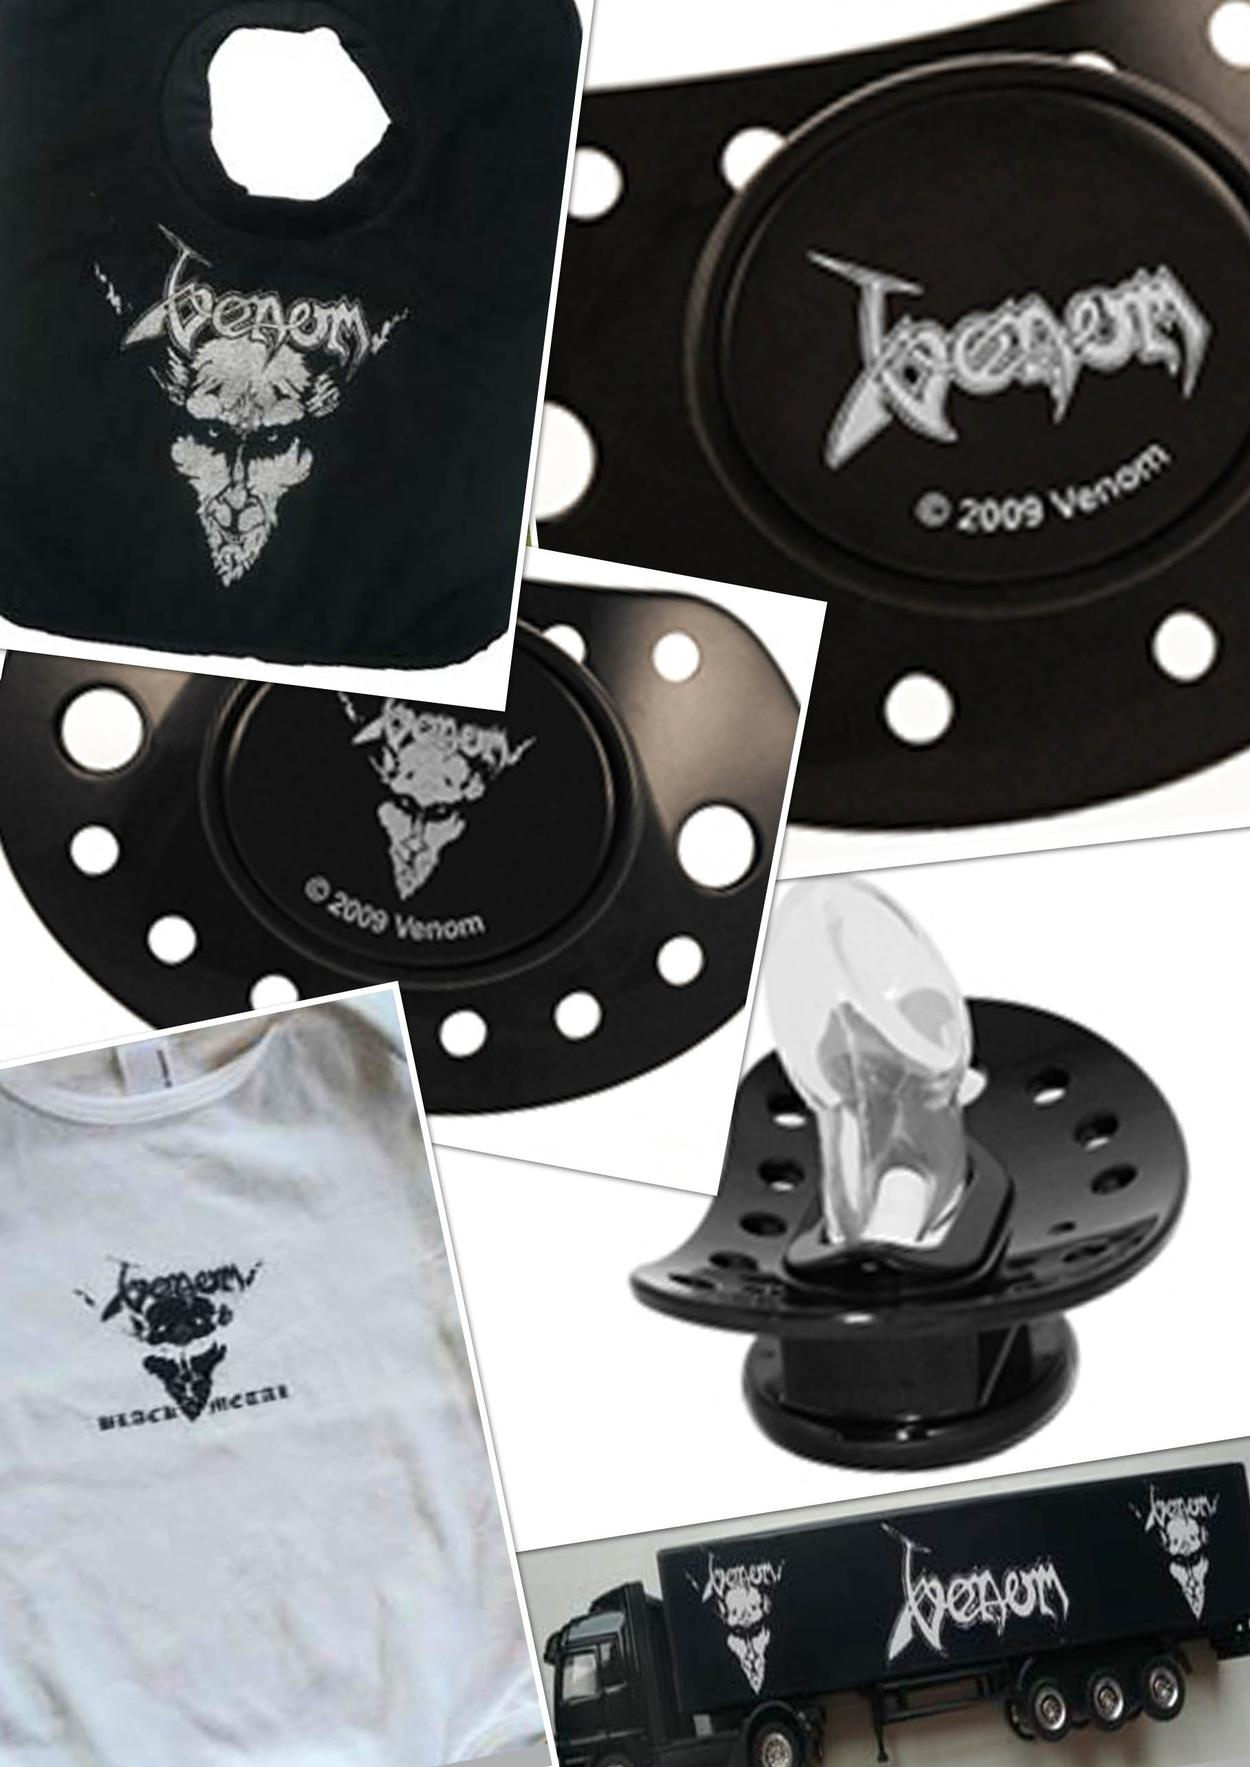 venom black metal collection homepage children toys